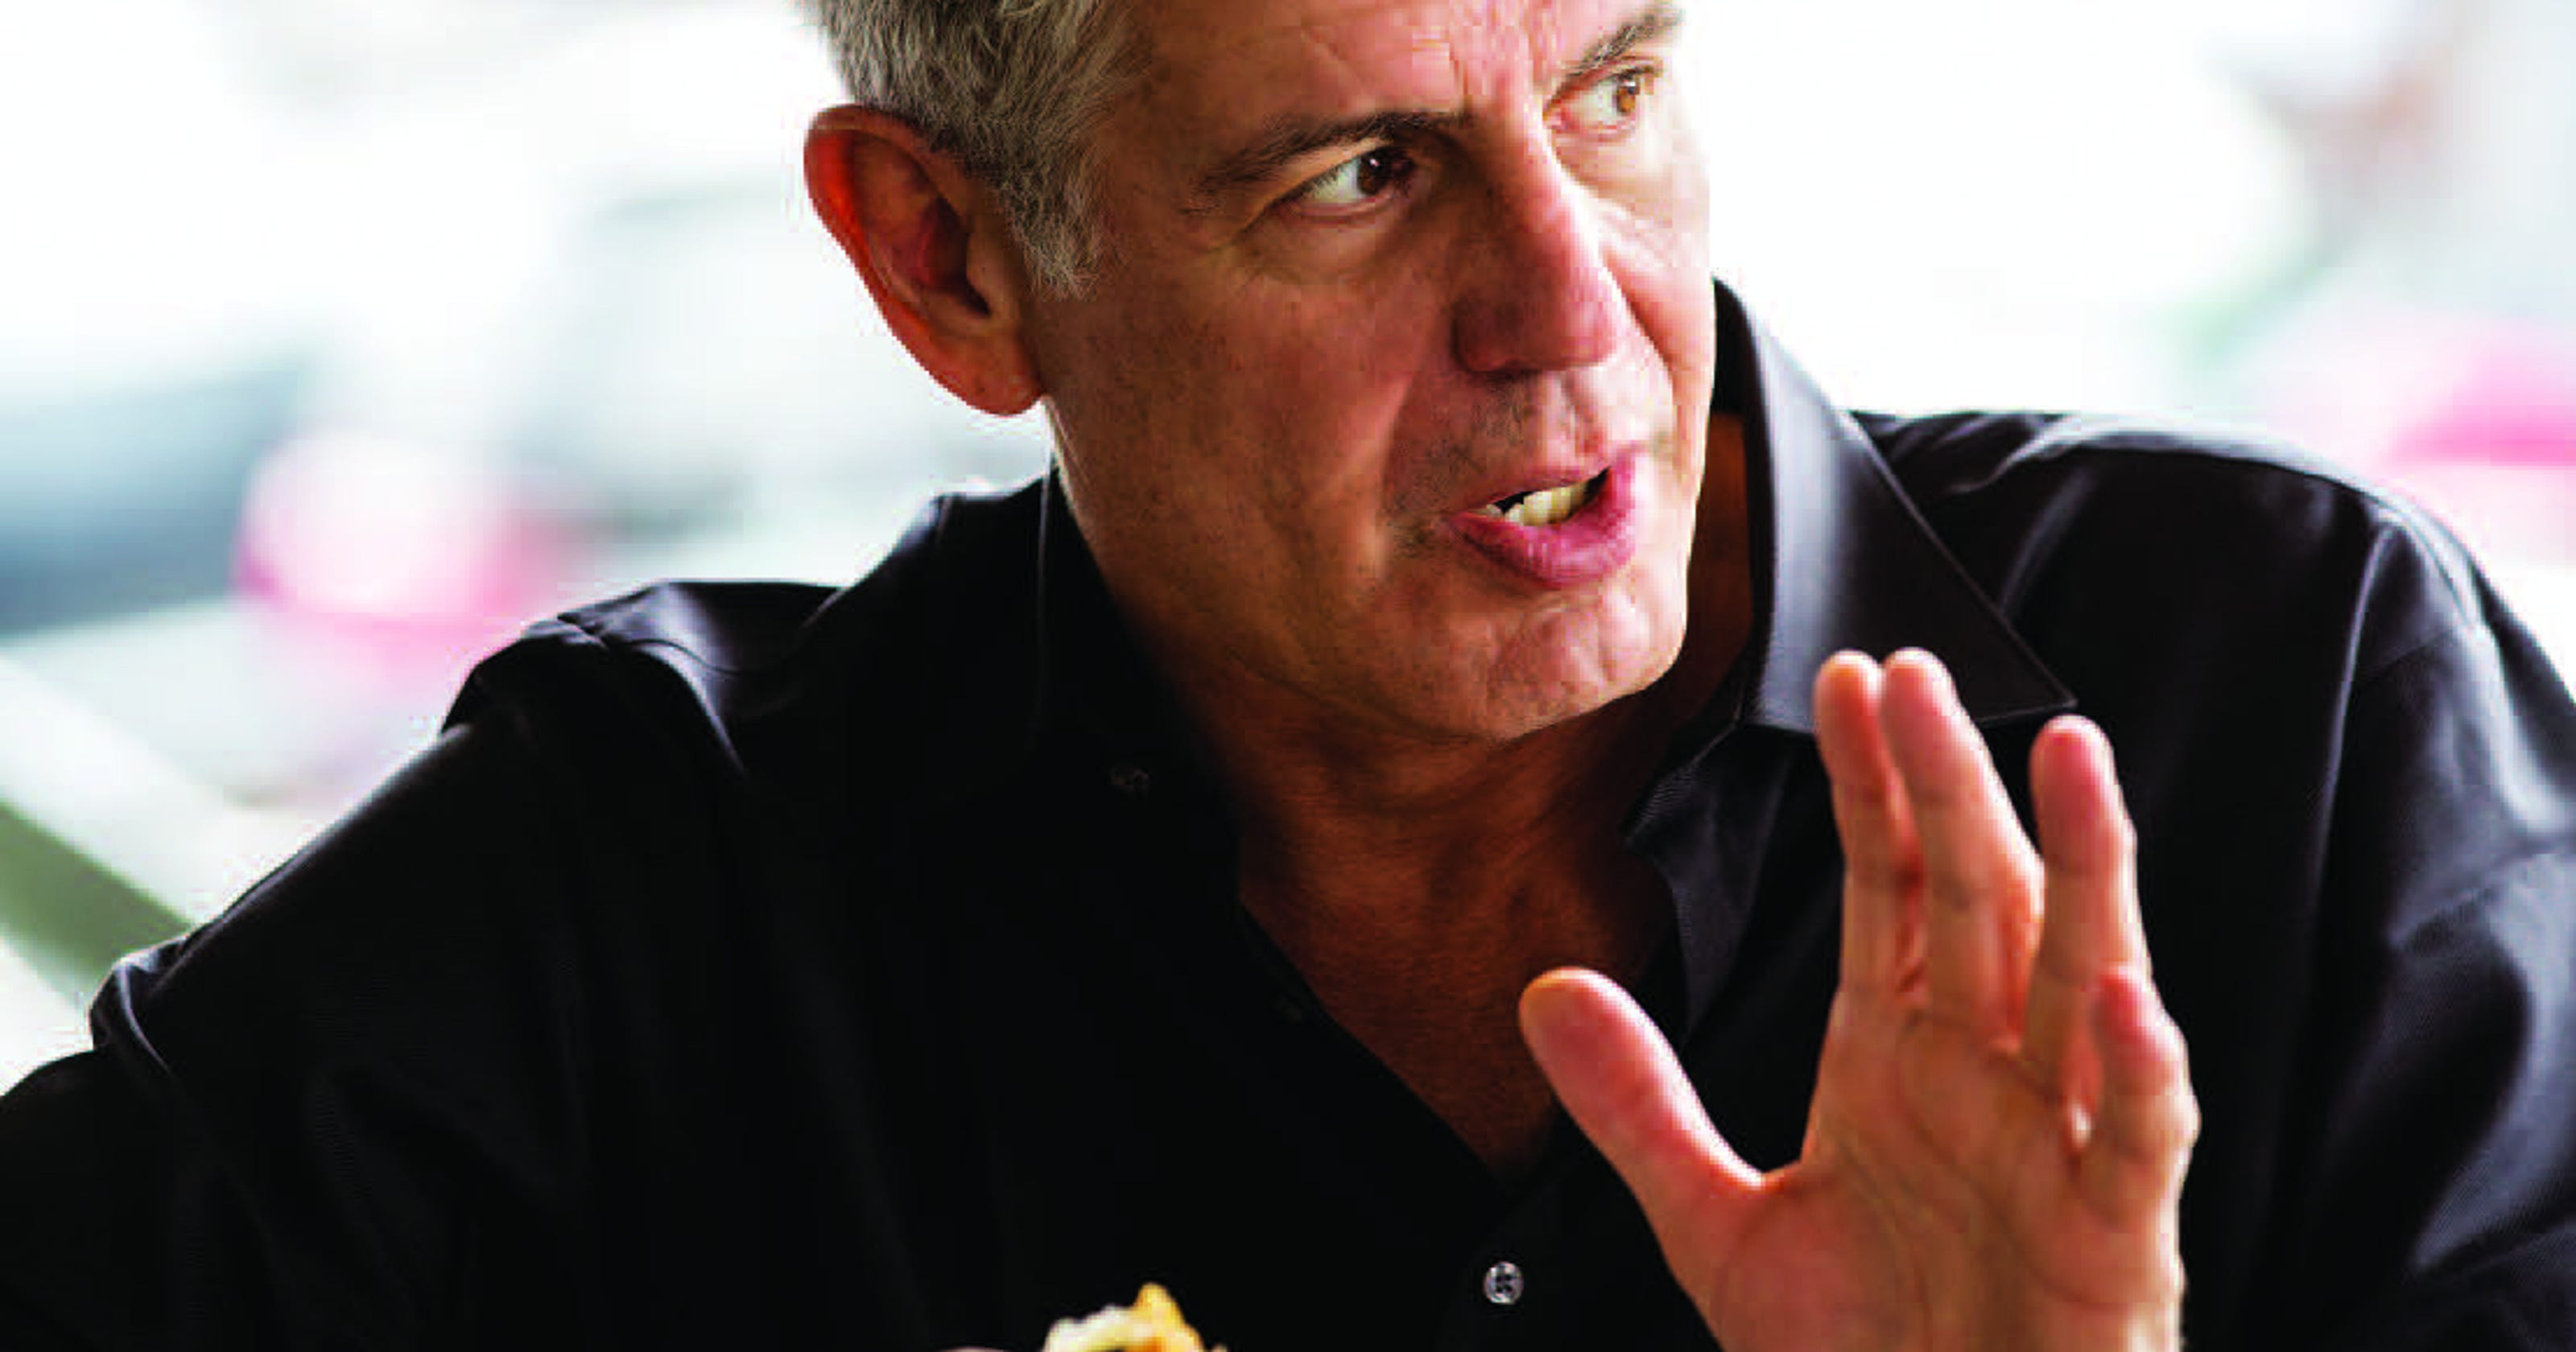 Anthony Bourdain New Jersey: Restaurants from 'Parts Unknown' episode